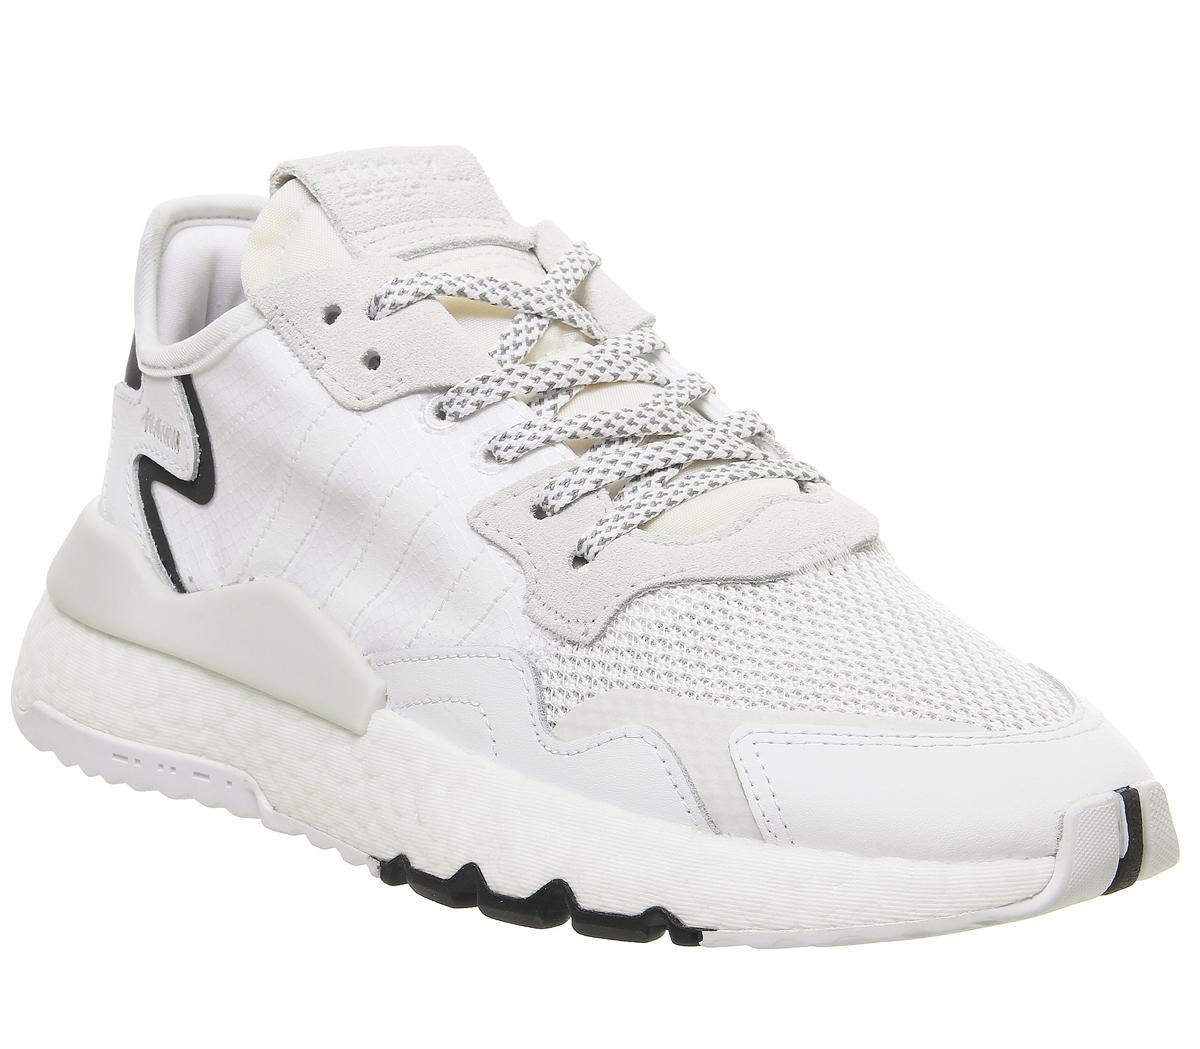 Nite Jogger Boost Trainers